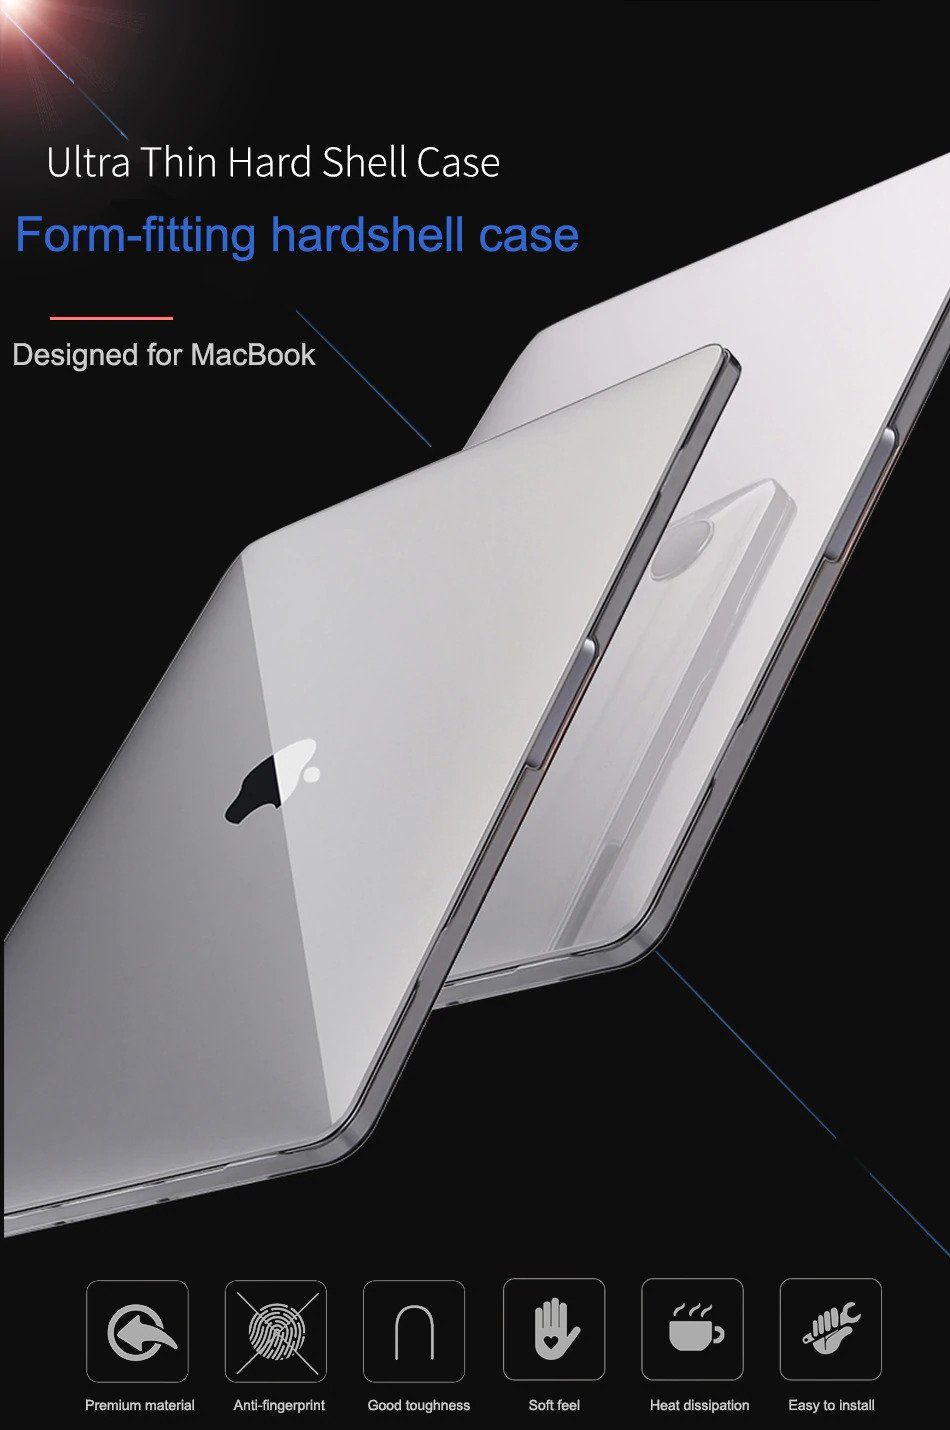 Ultra Thin Hard Shell Case Designed for Macbook